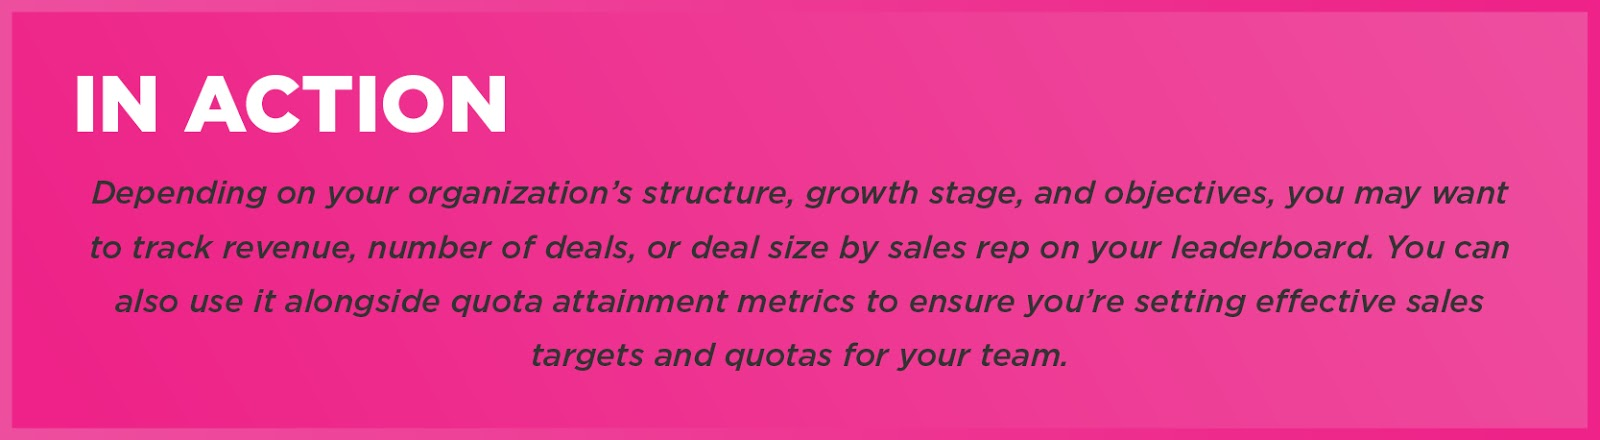 In Action: Depending on your organization's structure, growth stage, and objectives, you may want to track revenue, number of deals, or deal size by sales rep on your leaderboard. You can also use it alongside quota attainment metrics to ensure you're setting effective sales targets and quotas for your team.